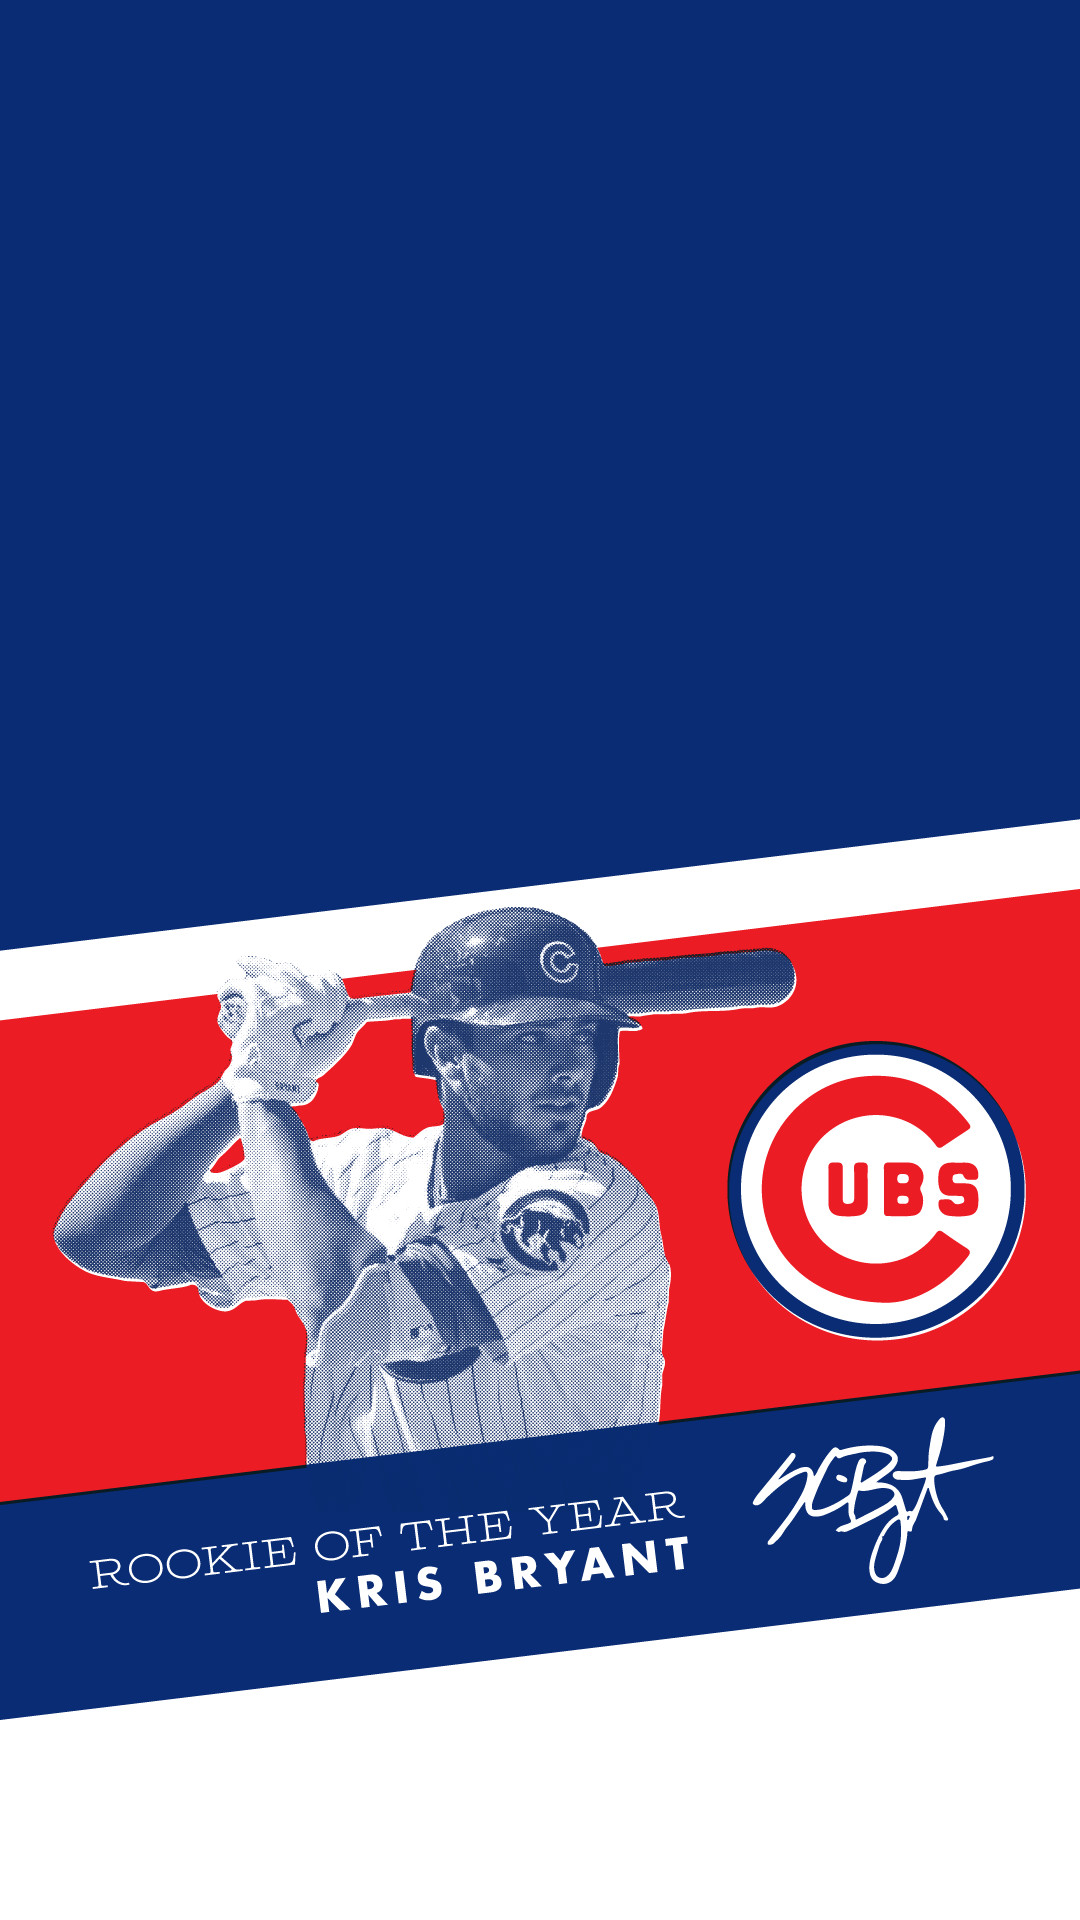 1080x1920 Kris Bryant Rookie of the Year, ...